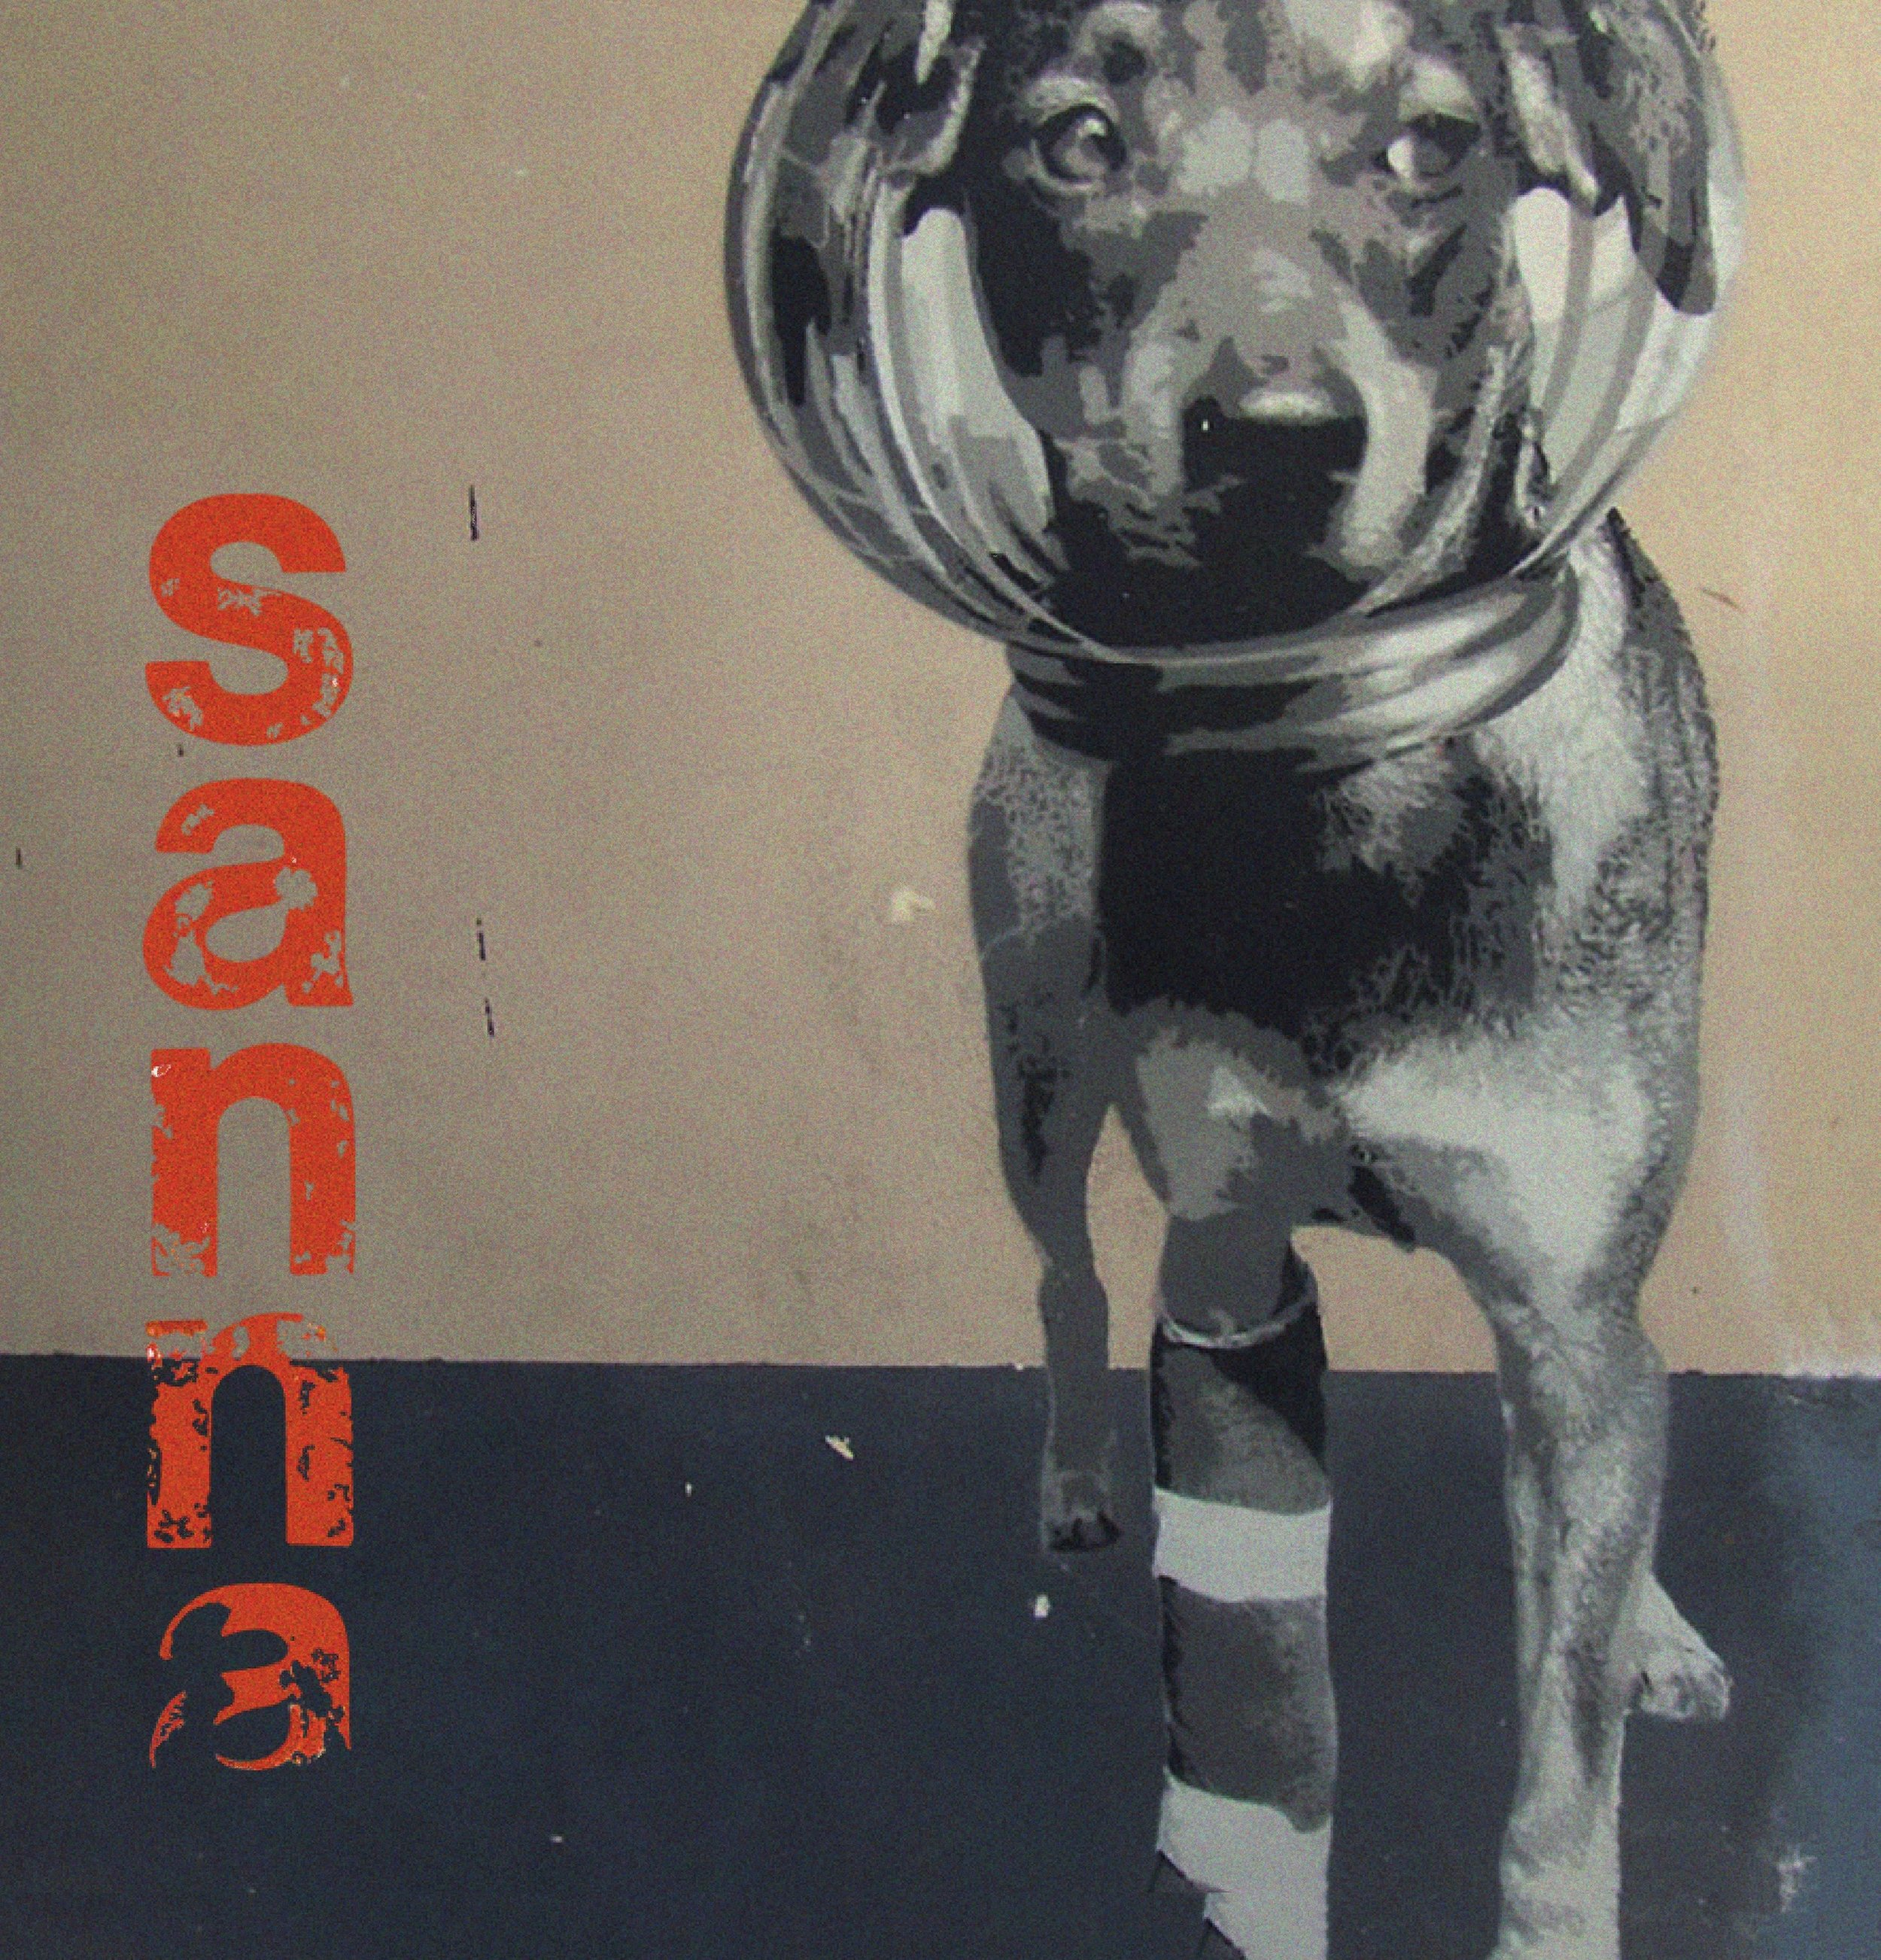 Sanna_Album_Cover_II.jpg